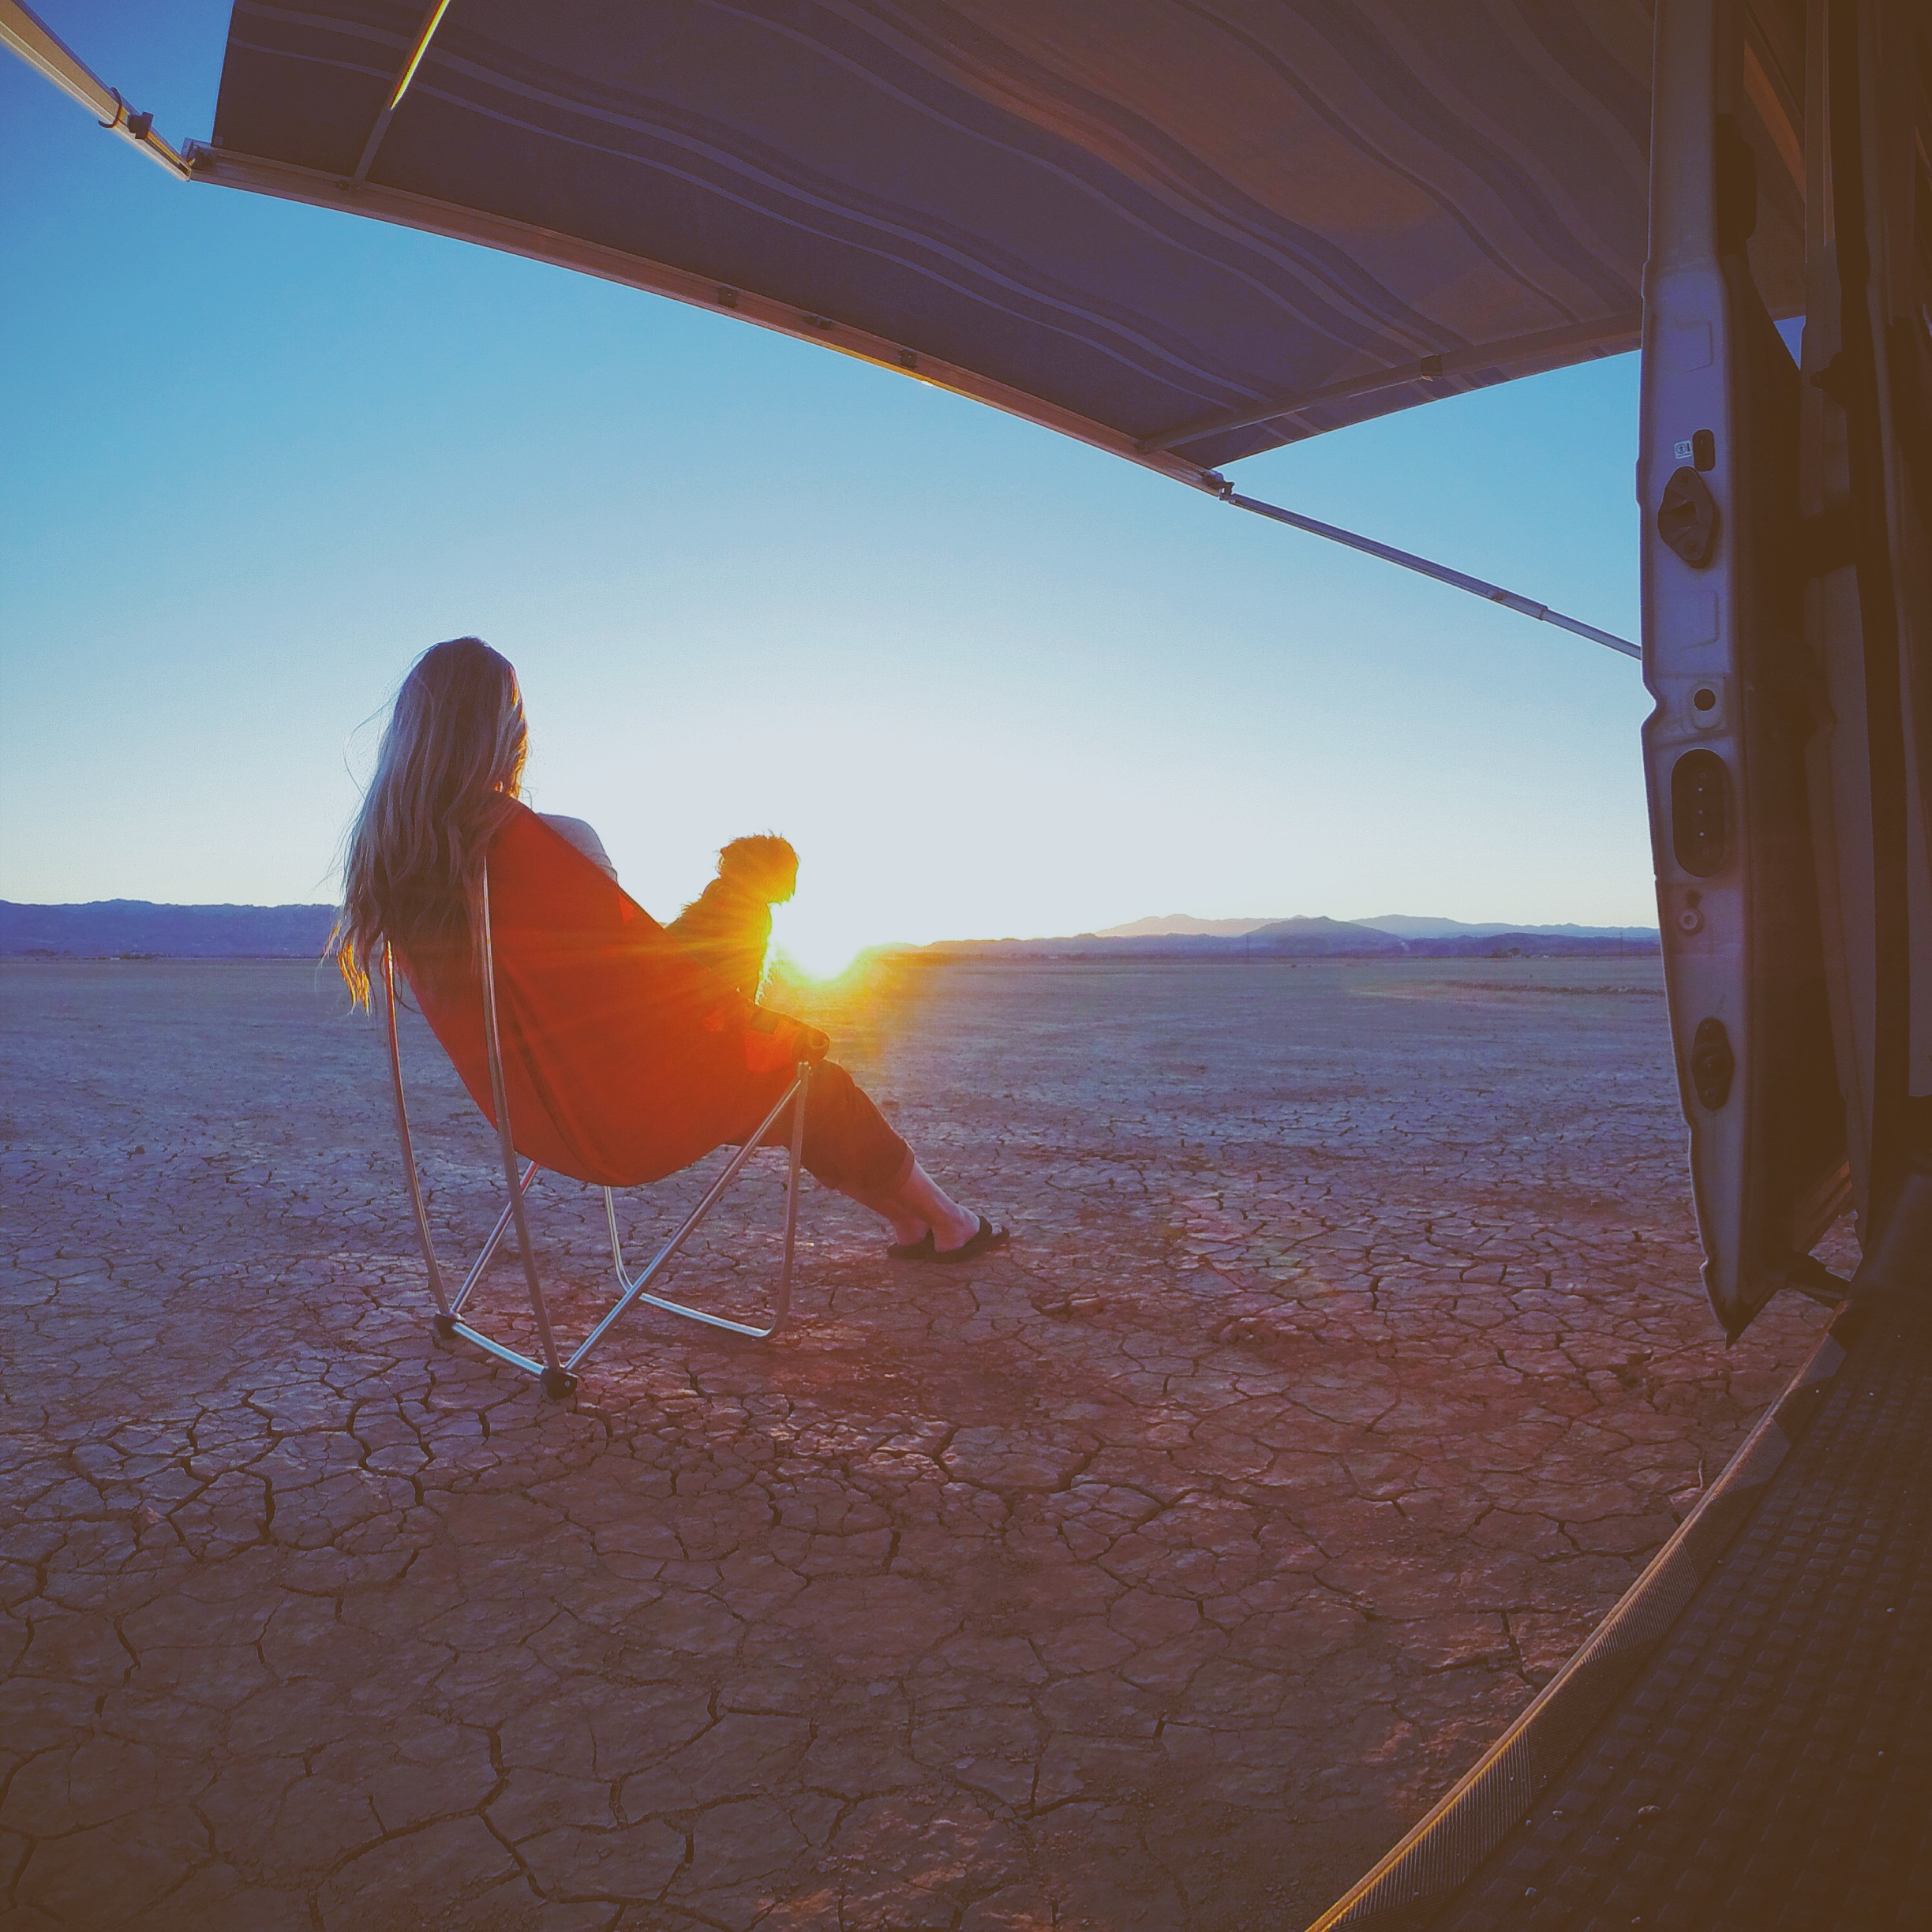 Watching the sunset with Max in the desert